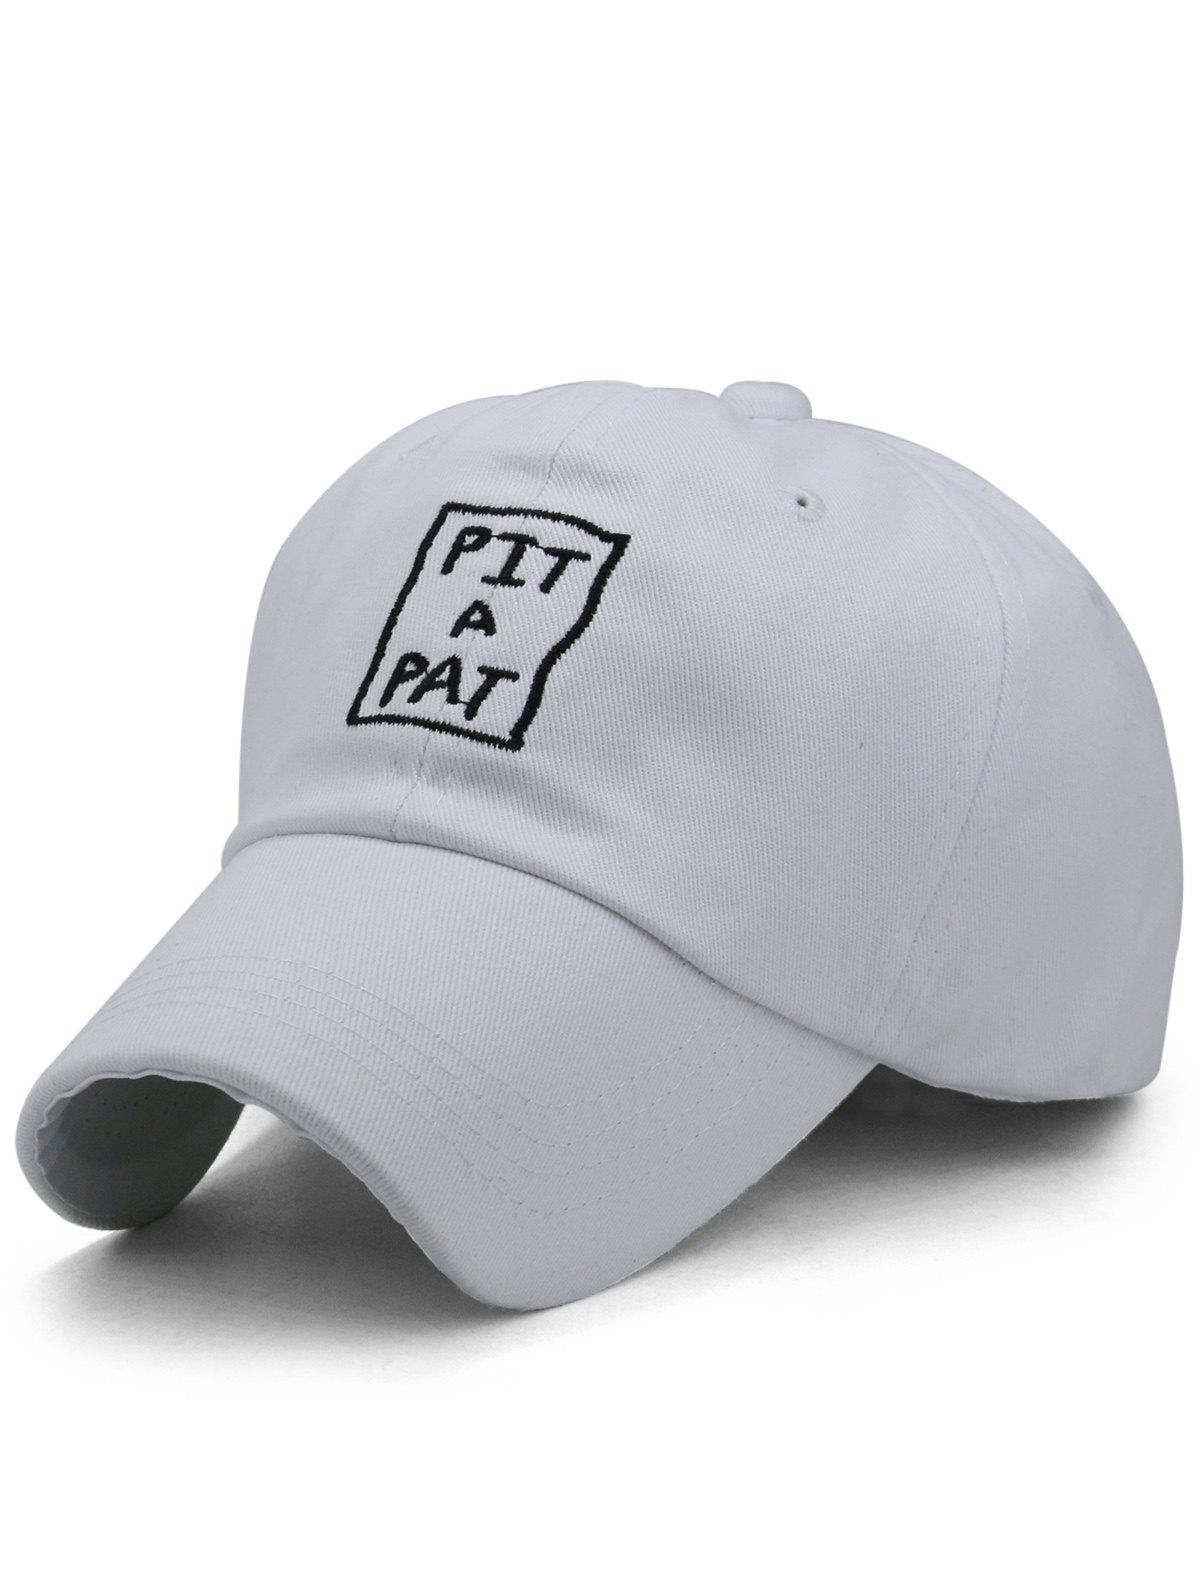 PIT A PAT Embroidery Sunscreen Hat - WHITE